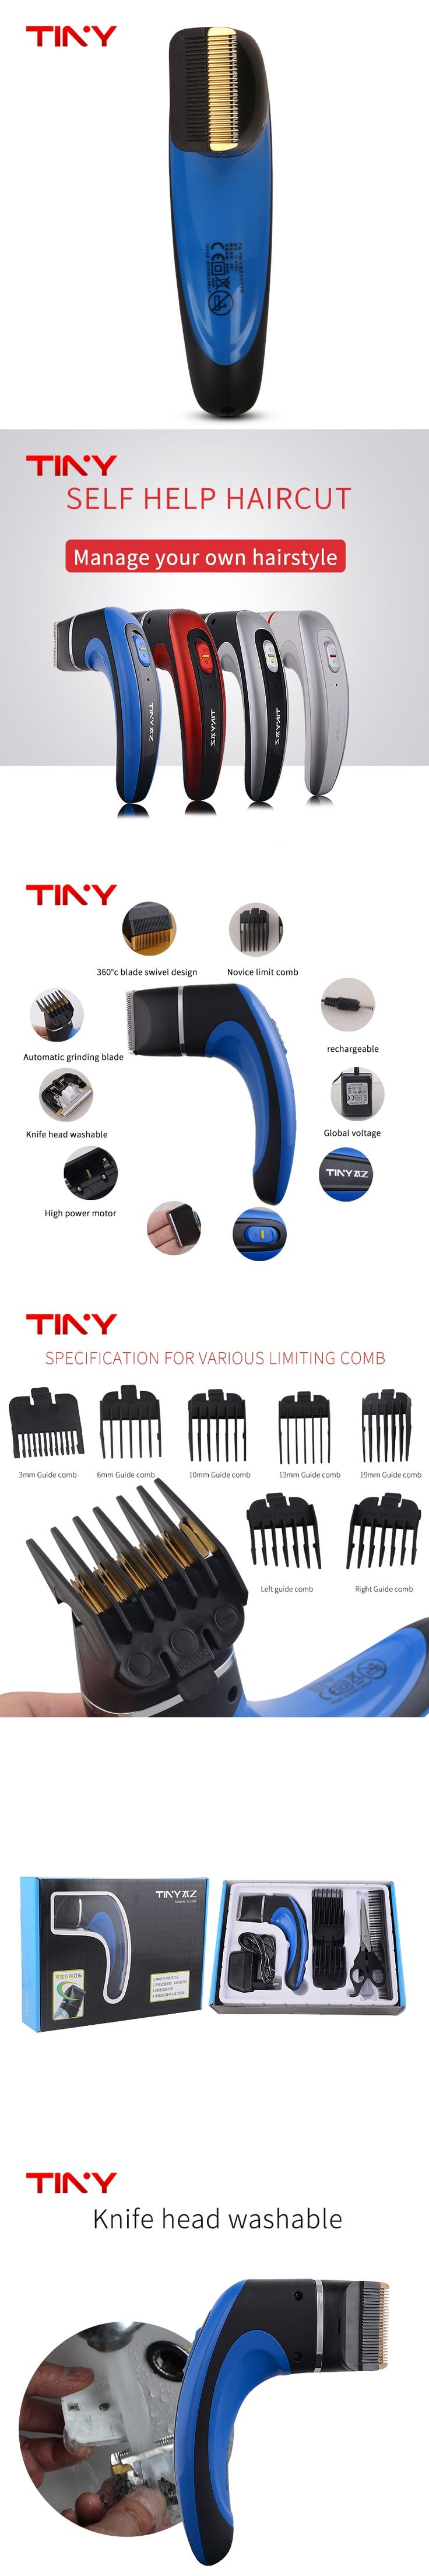 TINY Self Cut Professional Barber Rechargeable Electric Hair trimmer  Clipper Men hair cut machine Razor trimmer Beard  Shaver